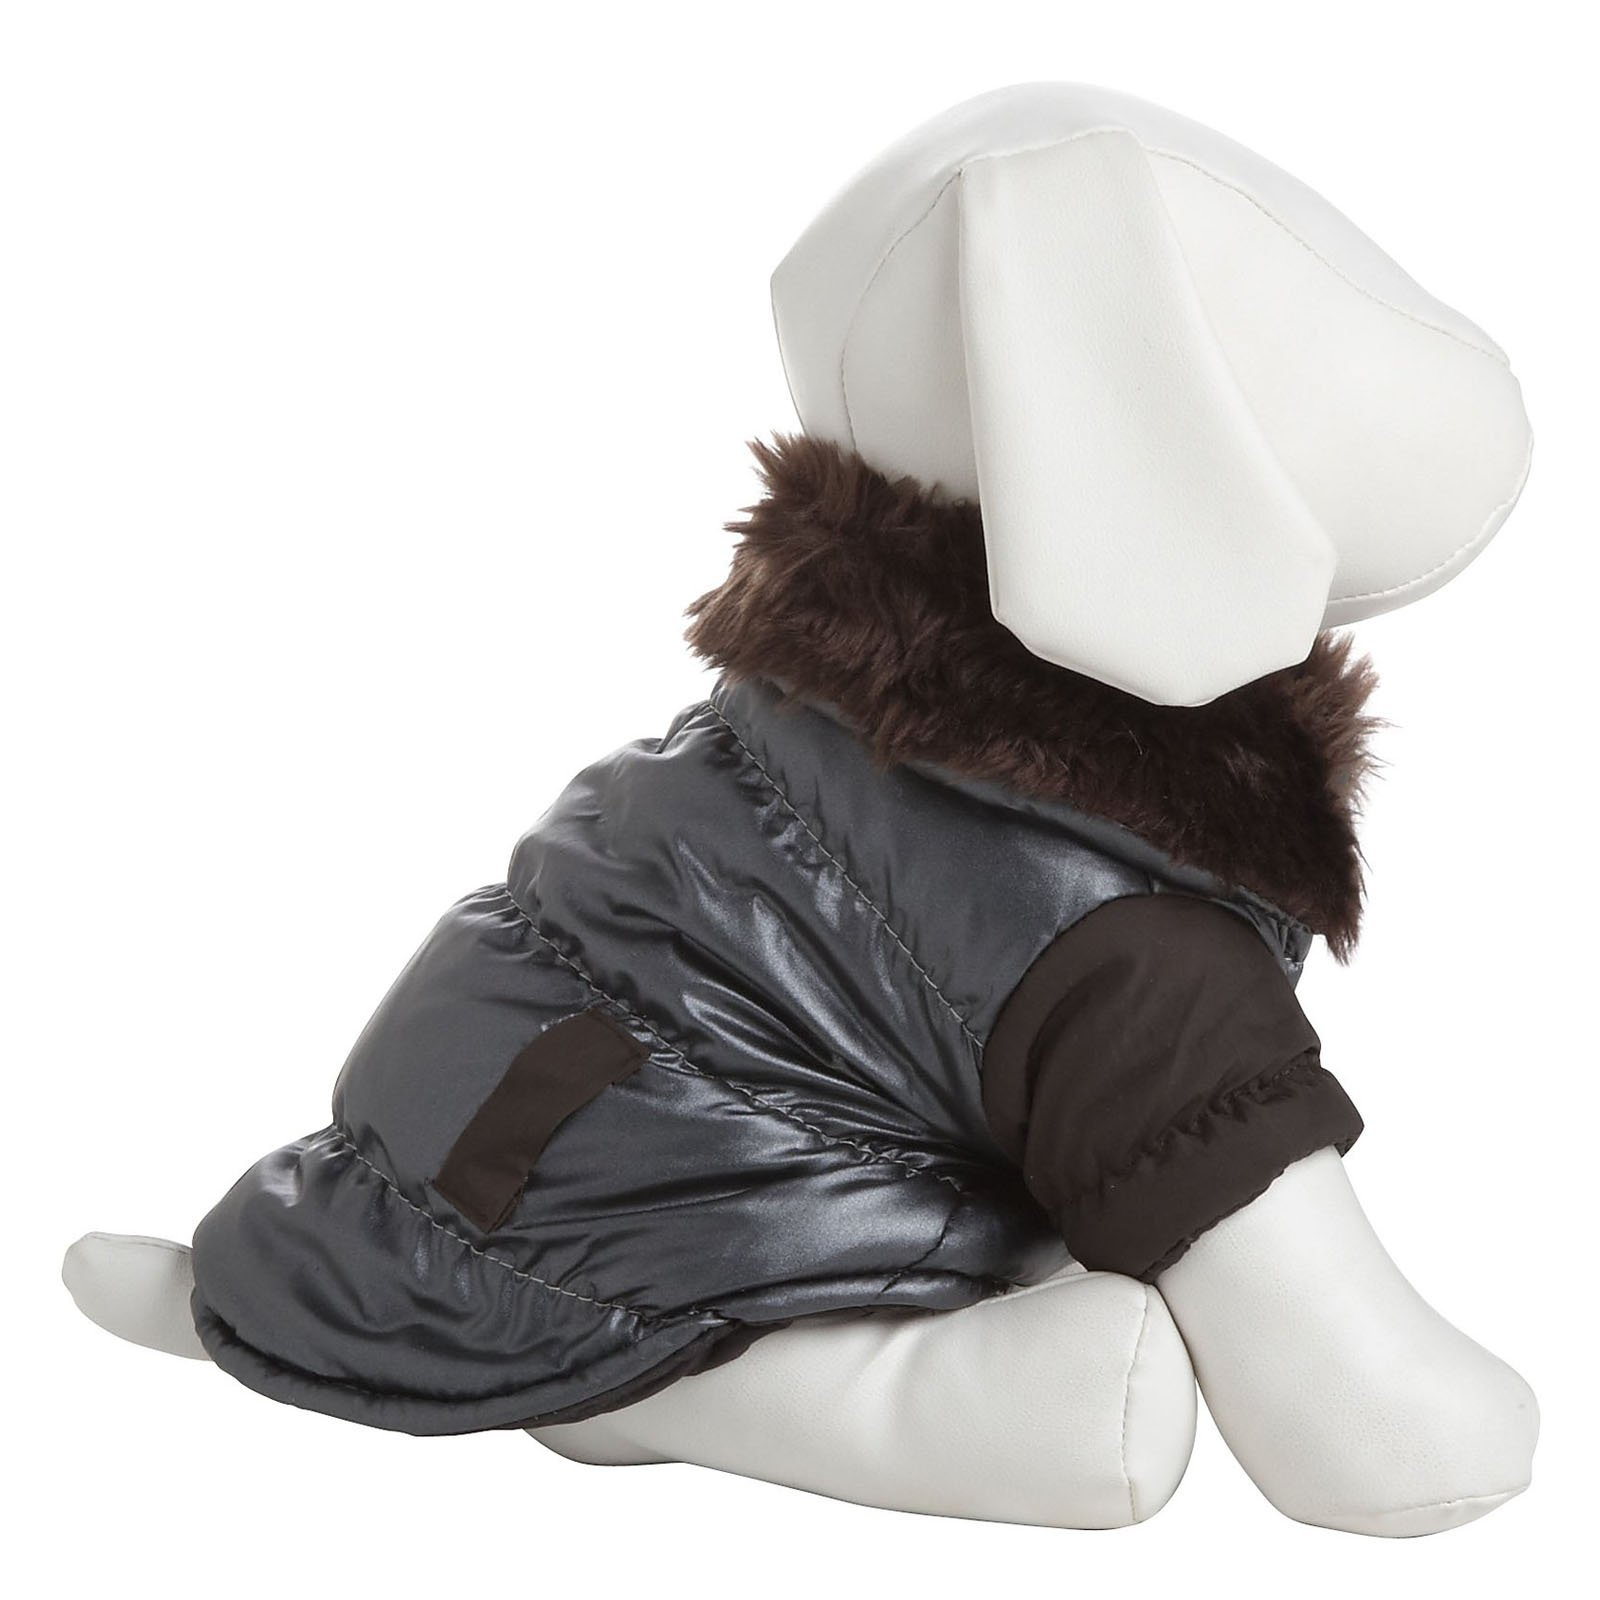 Ultra Fur 'Track-Collared' Metallic Pet Jacket - Metallic Brown - X-Small